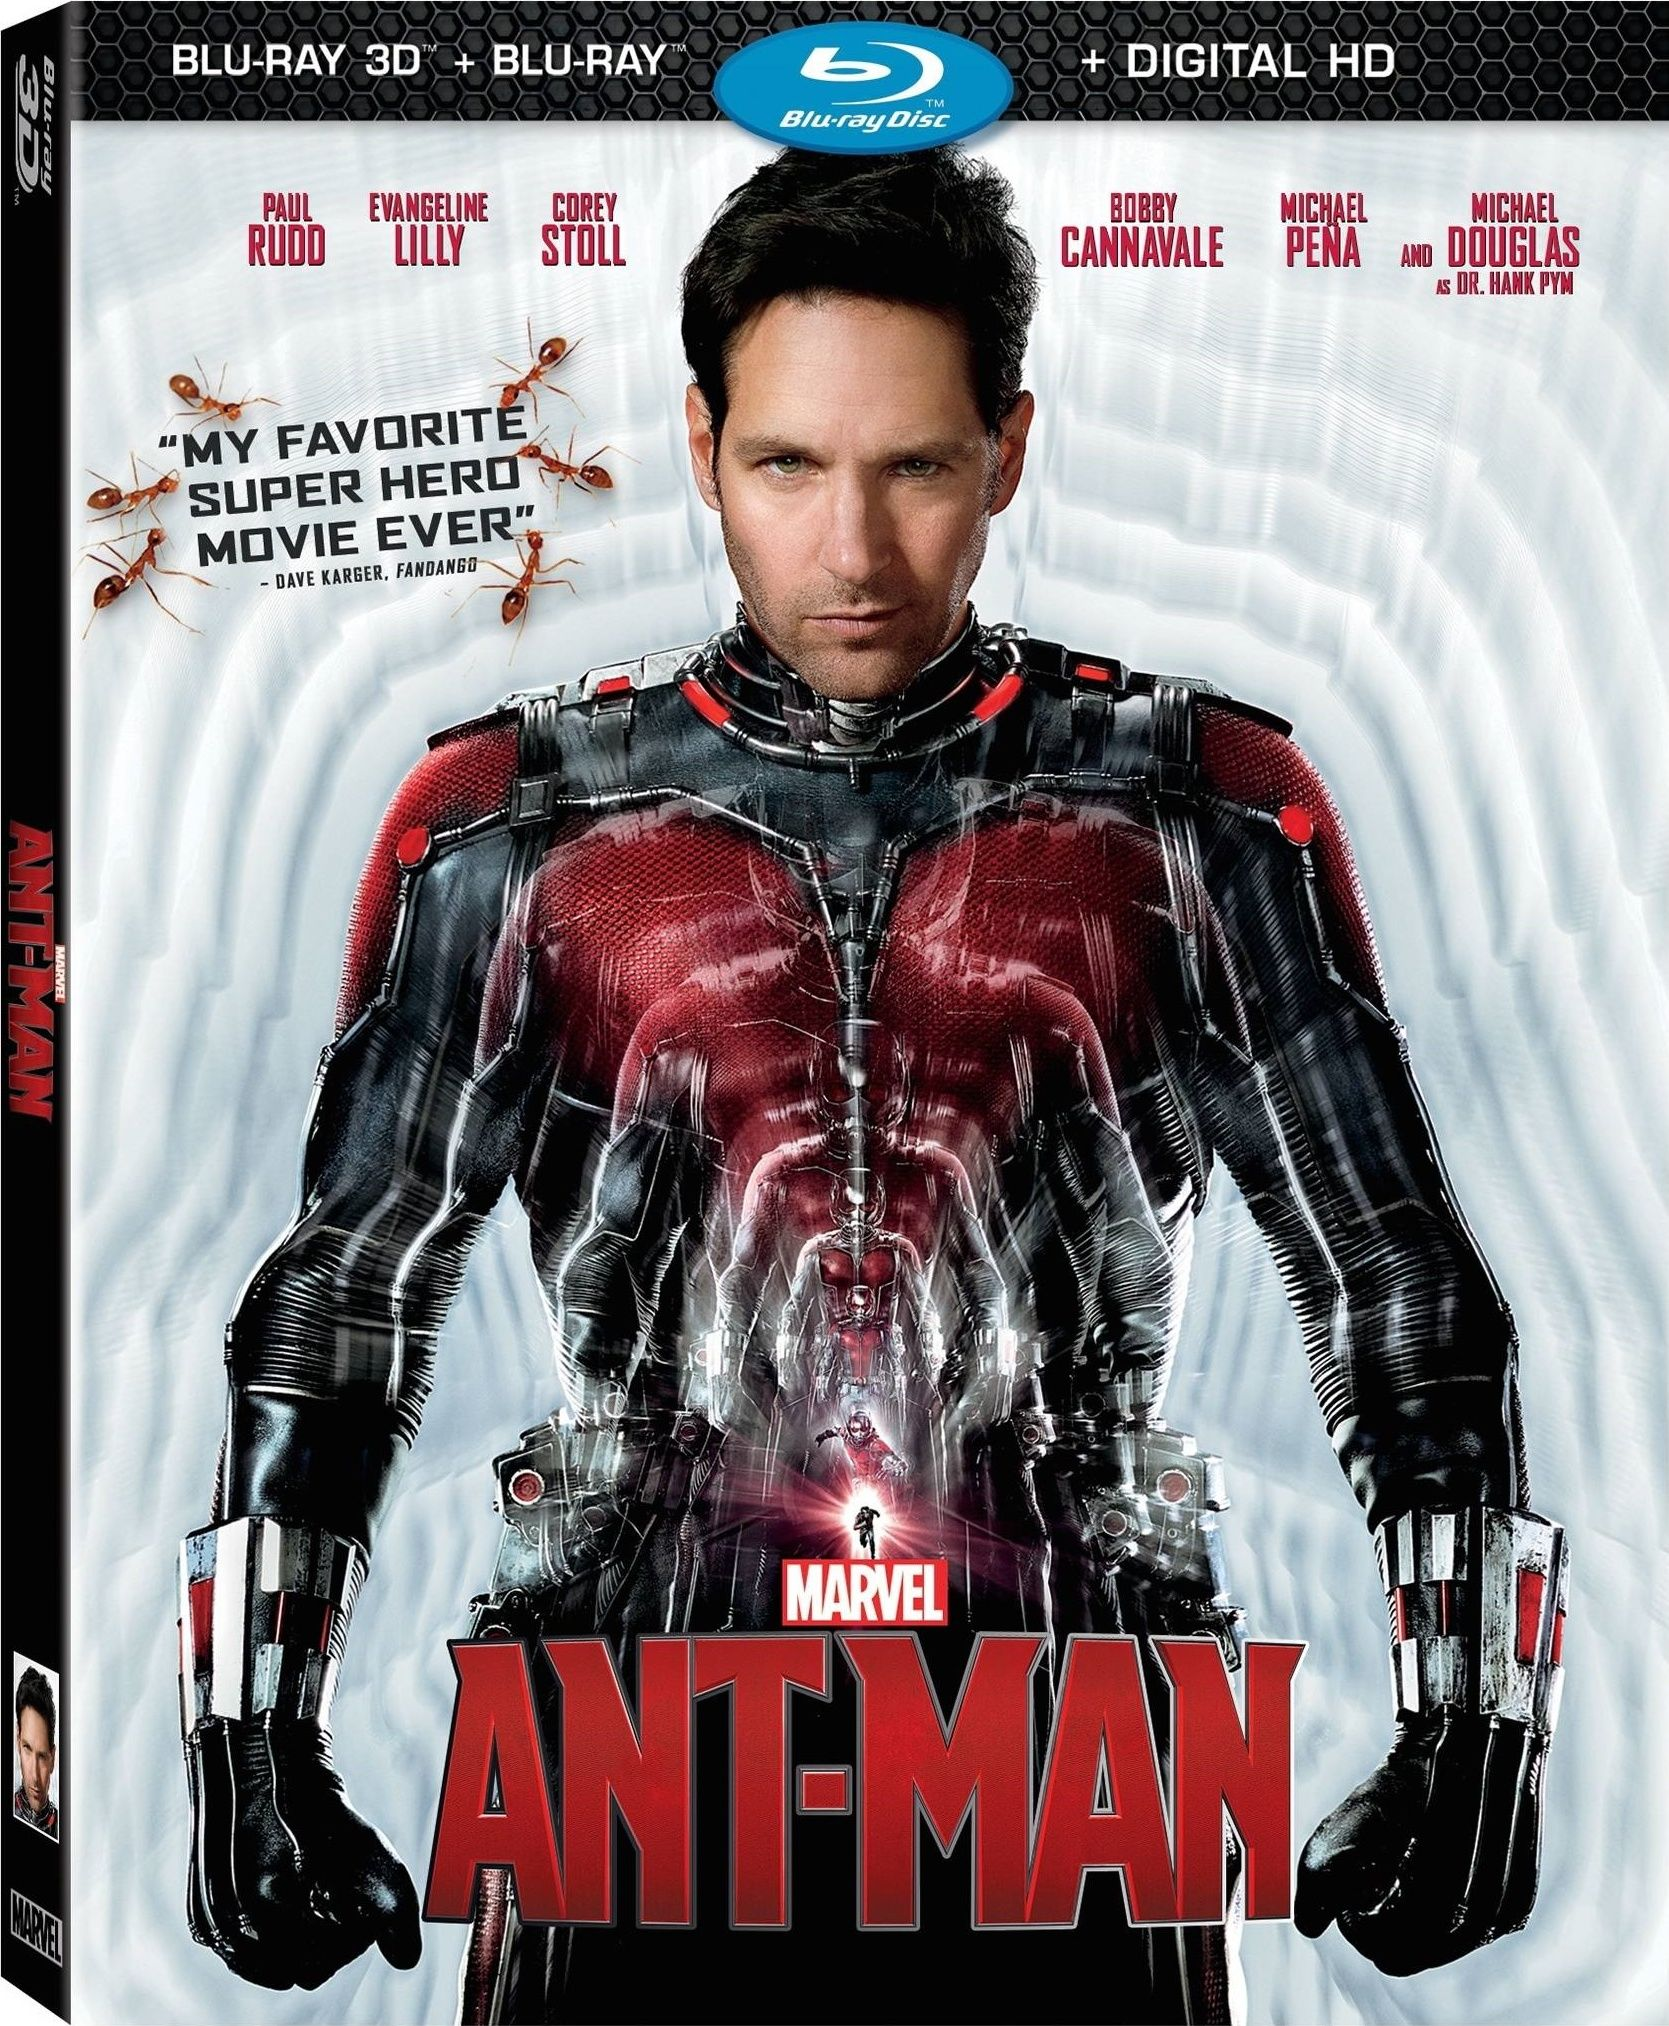 Ant man 2015 brrip vodlocker moviez download movies ant man 2015 brrip vodlocker moviez ccuart Gallery